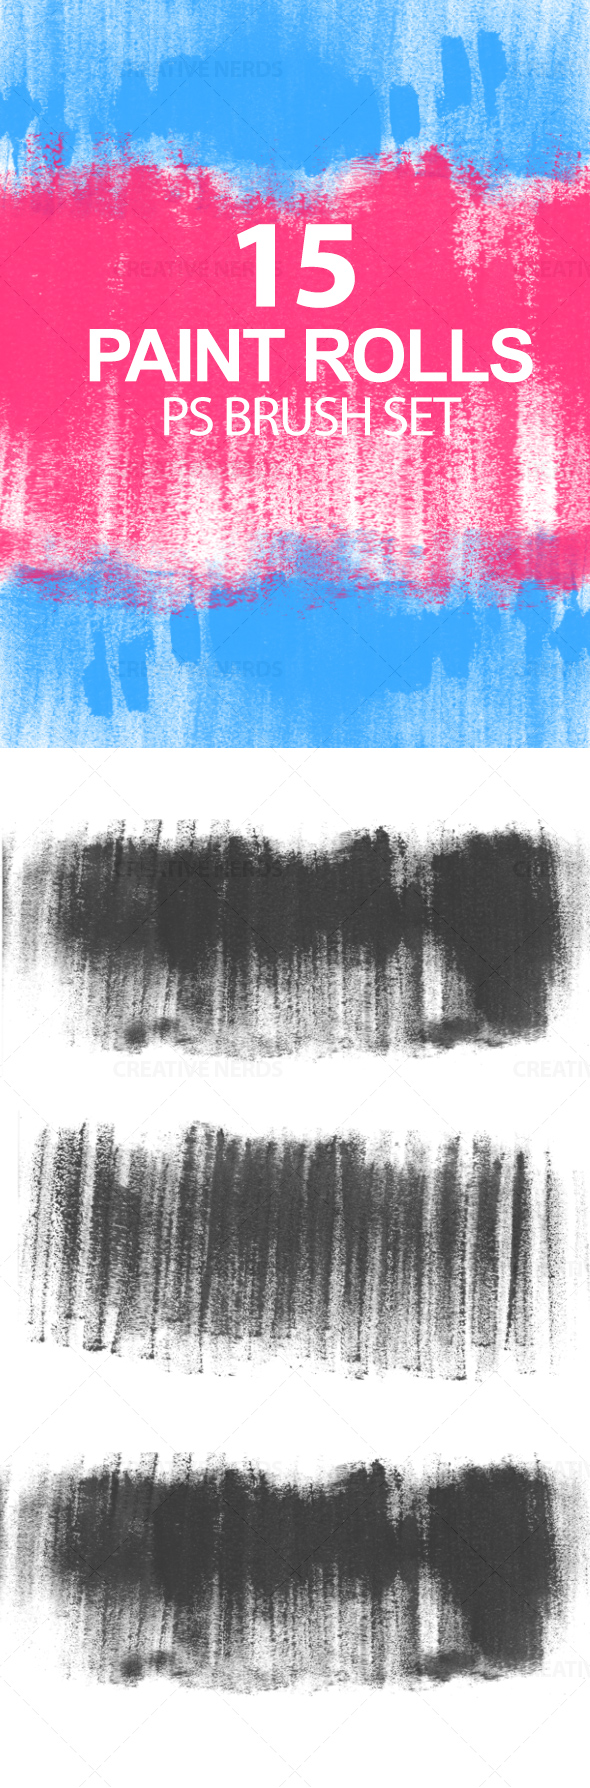 water marked brush set 15 High resolution Paint Rolls Photoshop brush set